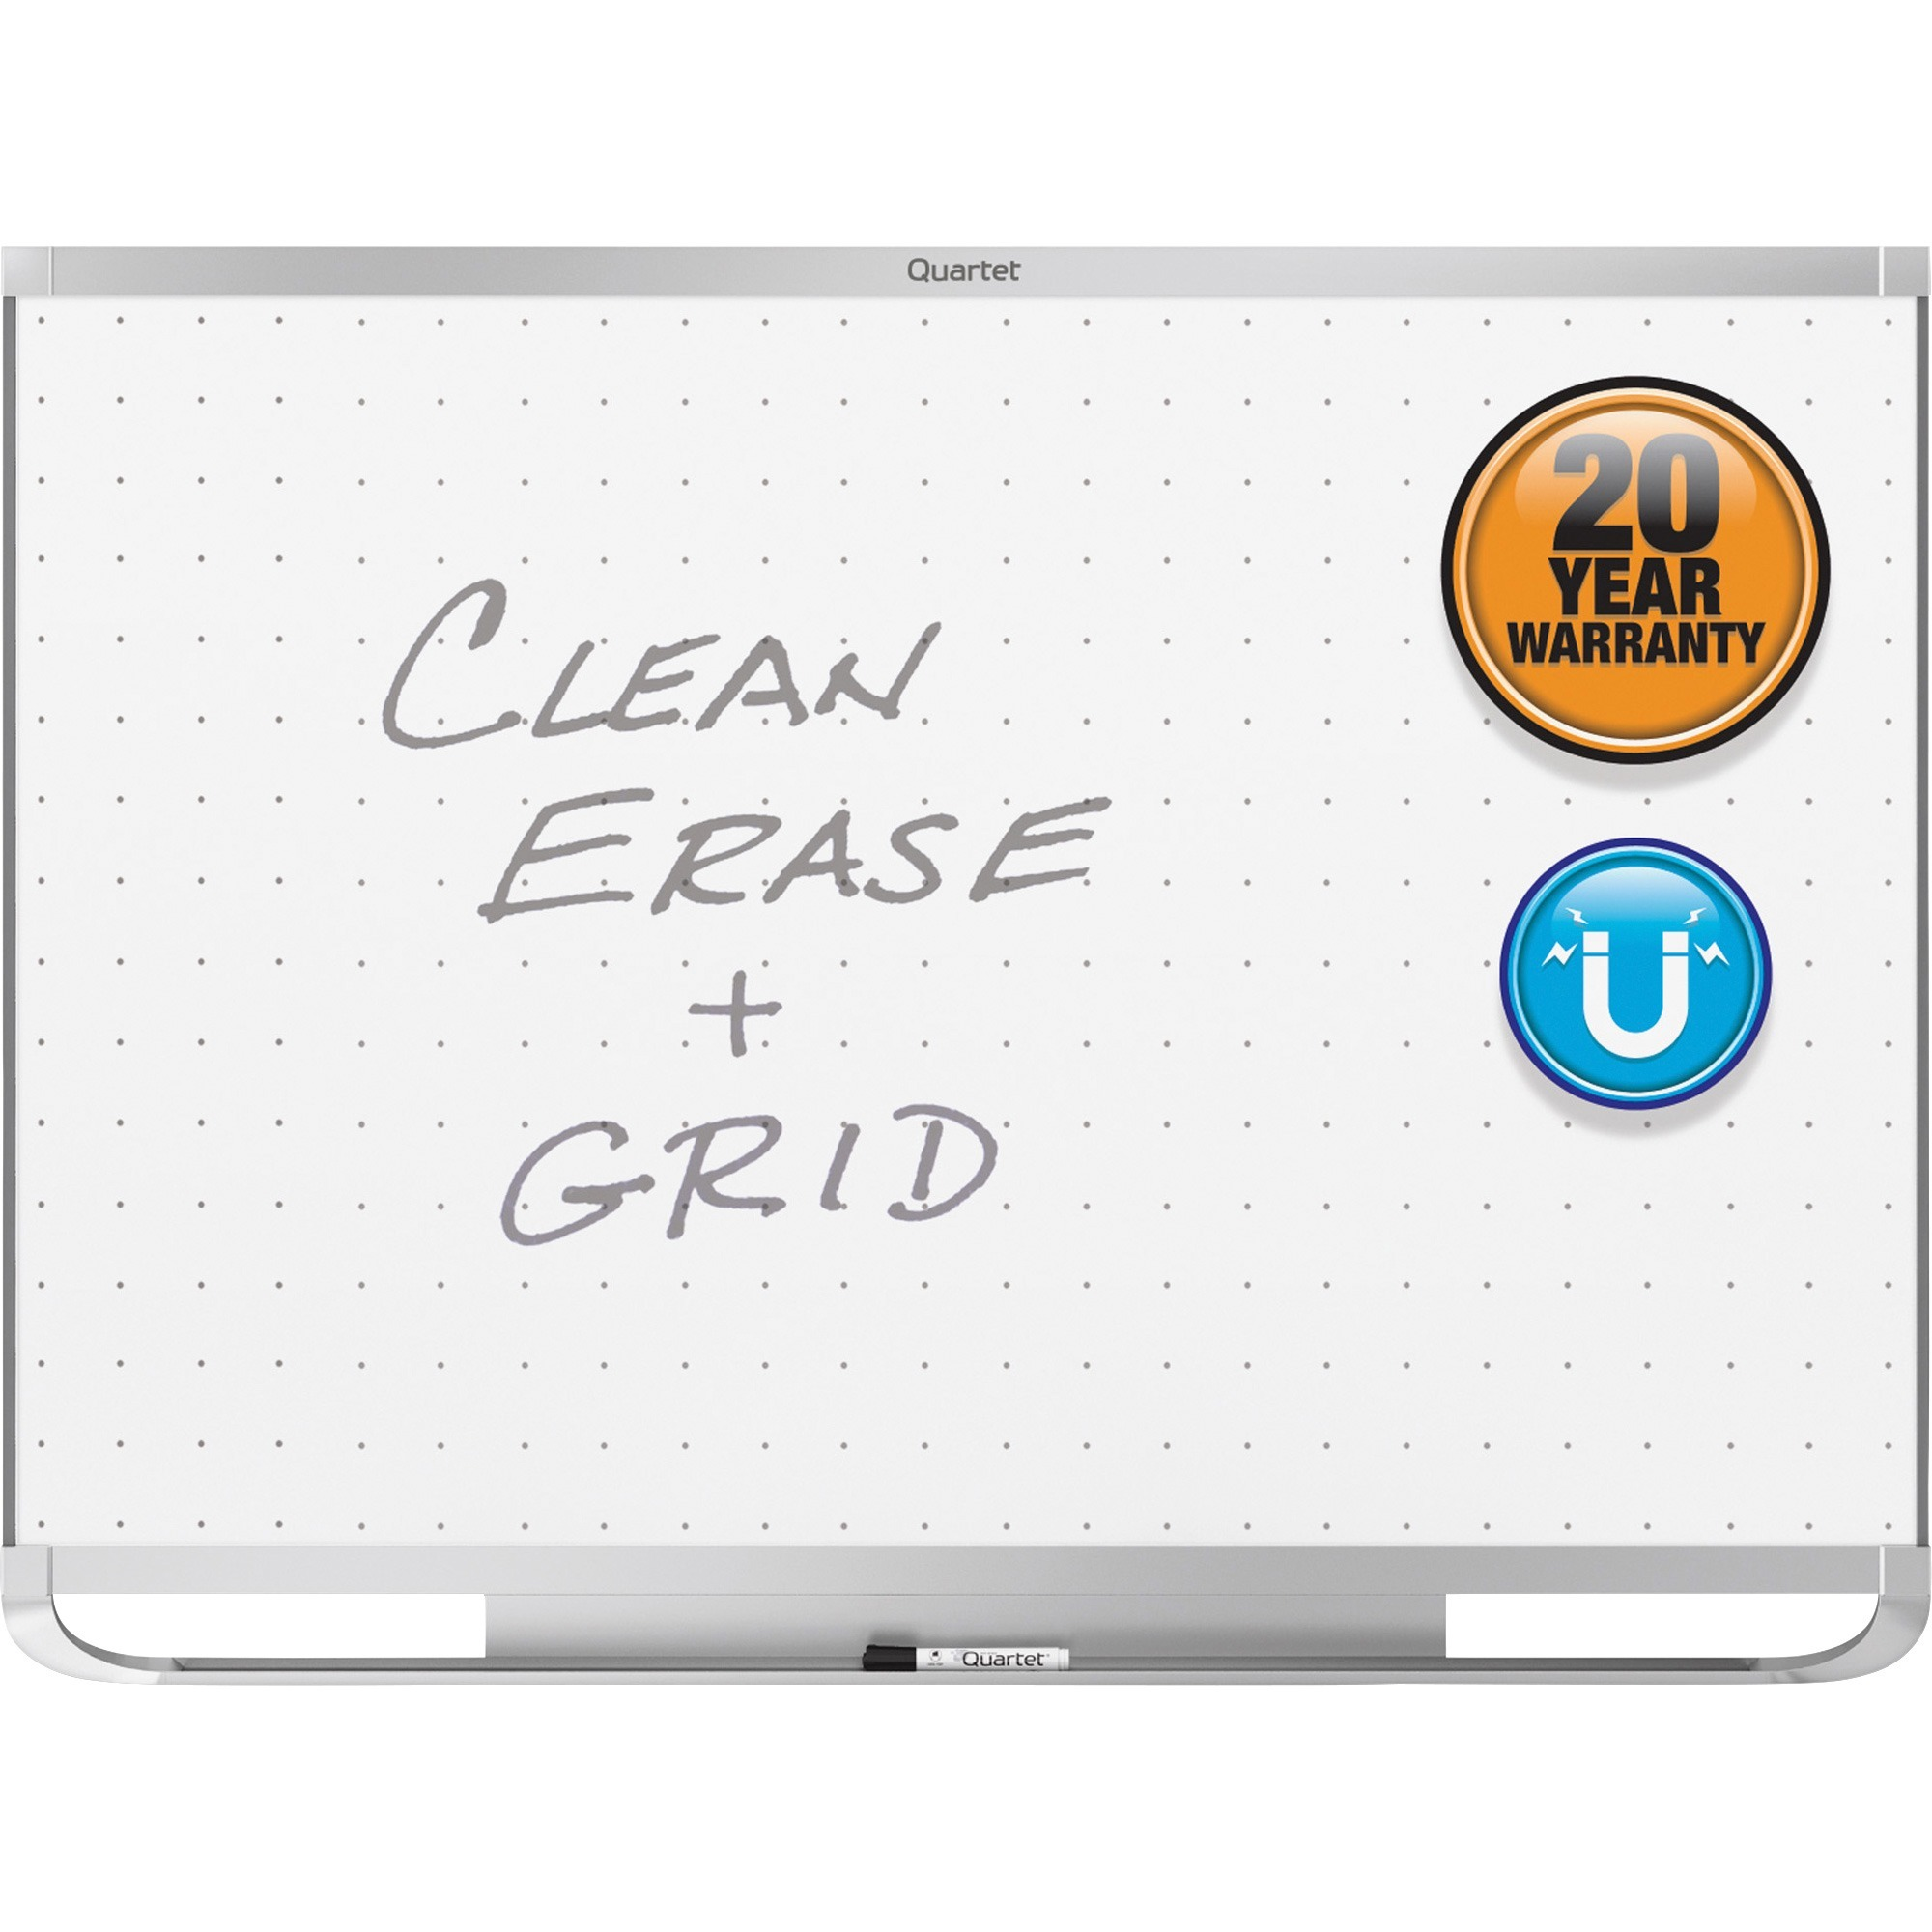 Acco Brands Corporation Quartet® Prestige® 2 Total Erase®magnetic Whiteboard, 6 X 4, Silver Aluminum Frame - 72 (6 Ft) Width X 48 (4 Ft) Height - White Magnetic Surface - Silver Aluminum Frame - Horizontal - 1 / Each